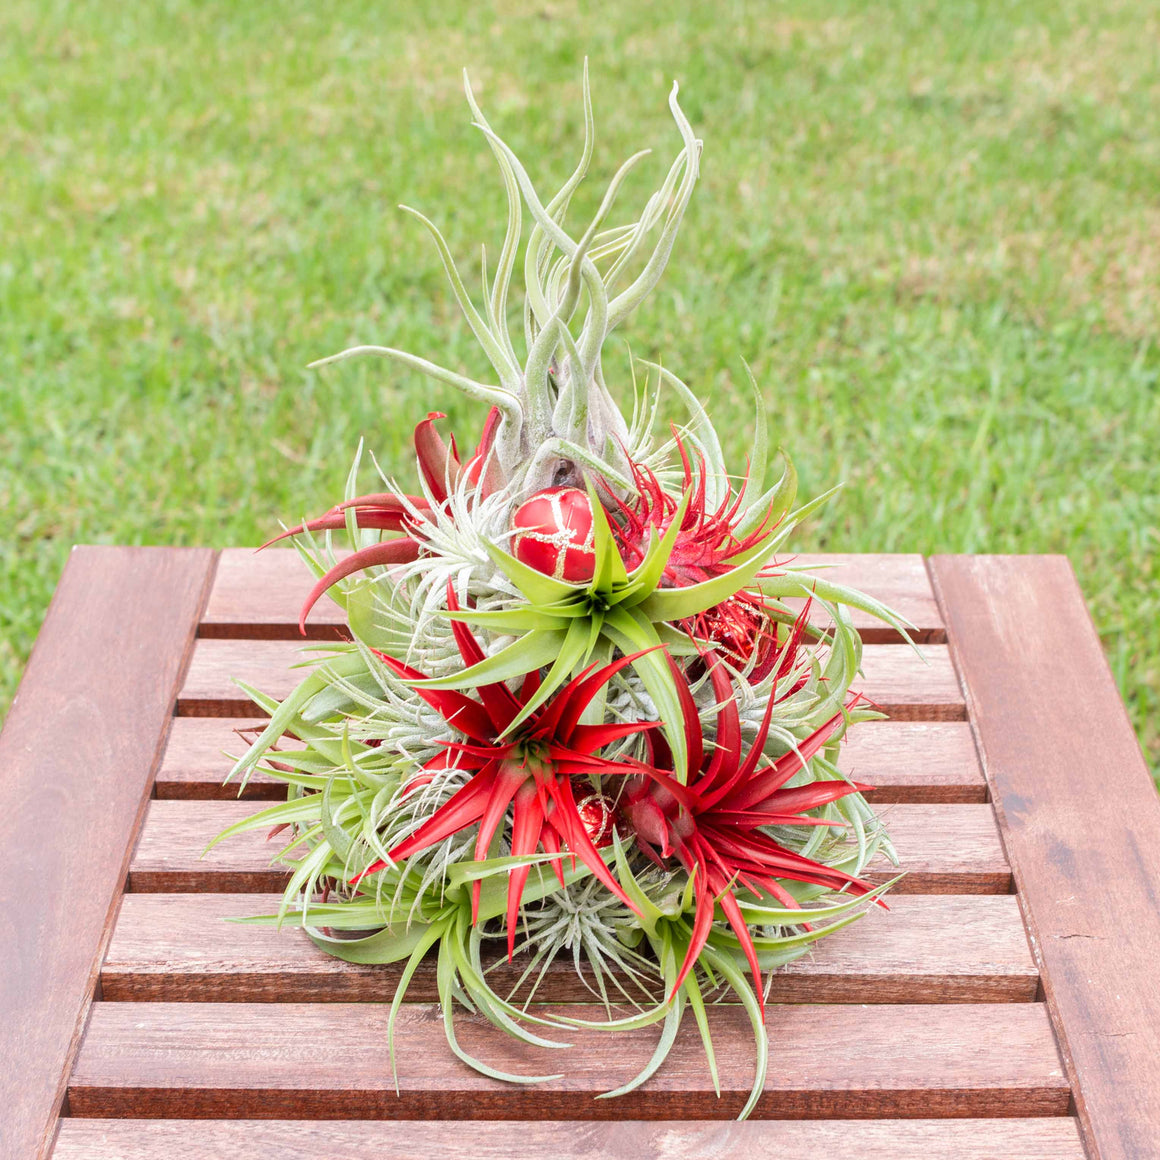 PRE-ORDER: 11 Inch Tall Miniature Handmade Air Plant Christmas Tree with 35 Living Tillandsias